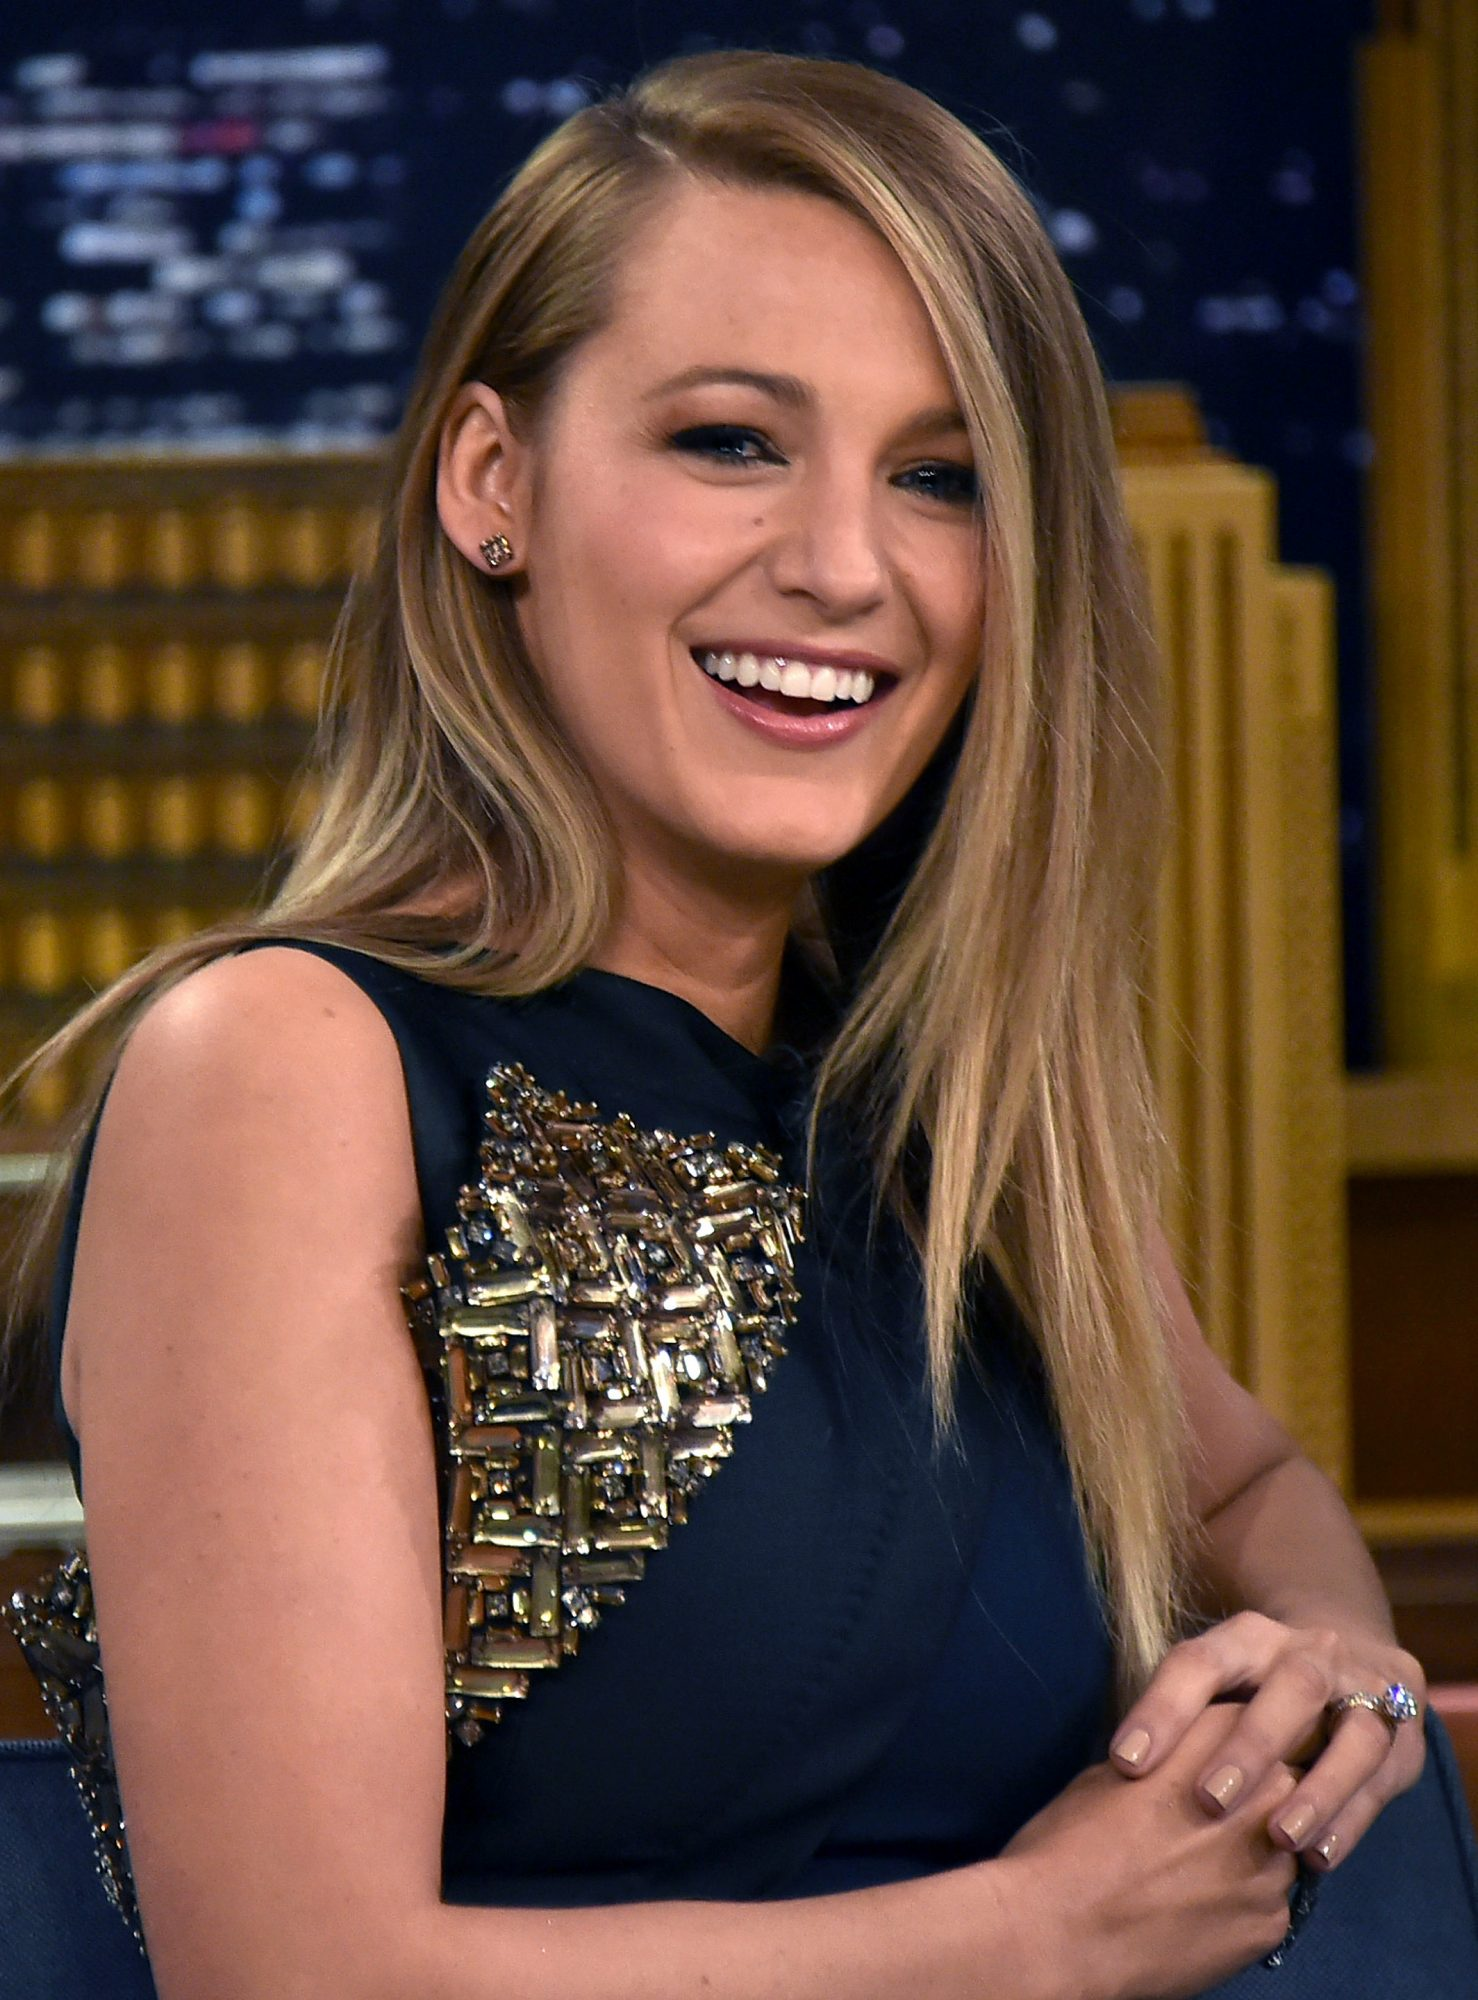 Blake Lively Visits  The Tonight Show Starring Jimmy Fallon